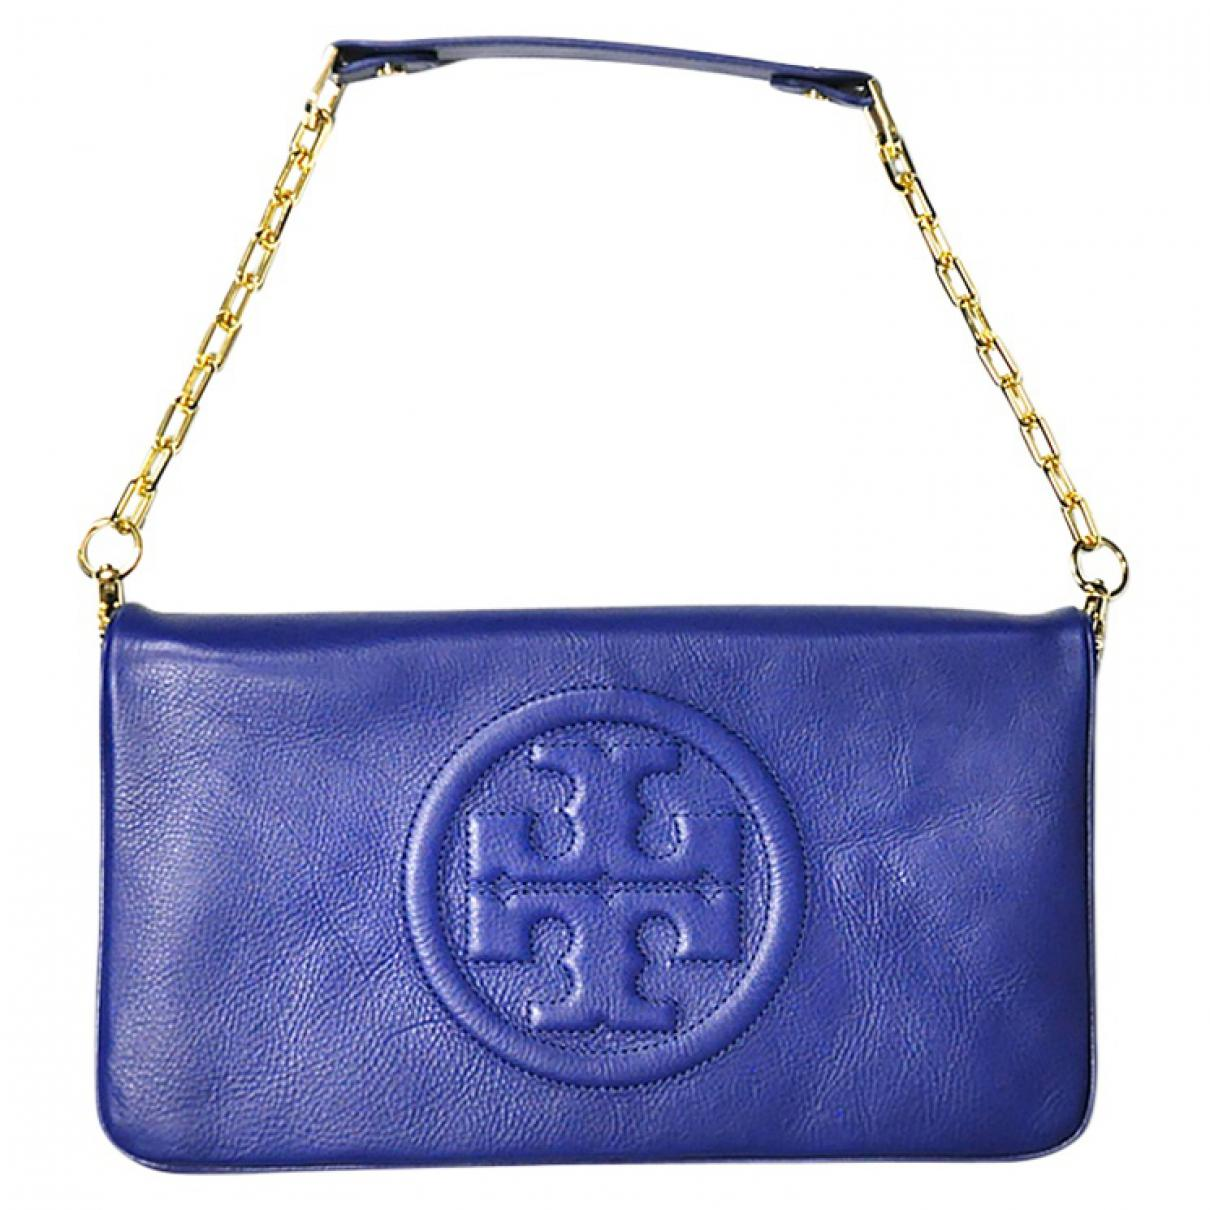 eb24241dd280 Tory Burch Pre-owned Blue Leather Clutch Bags in Blue - Lyst